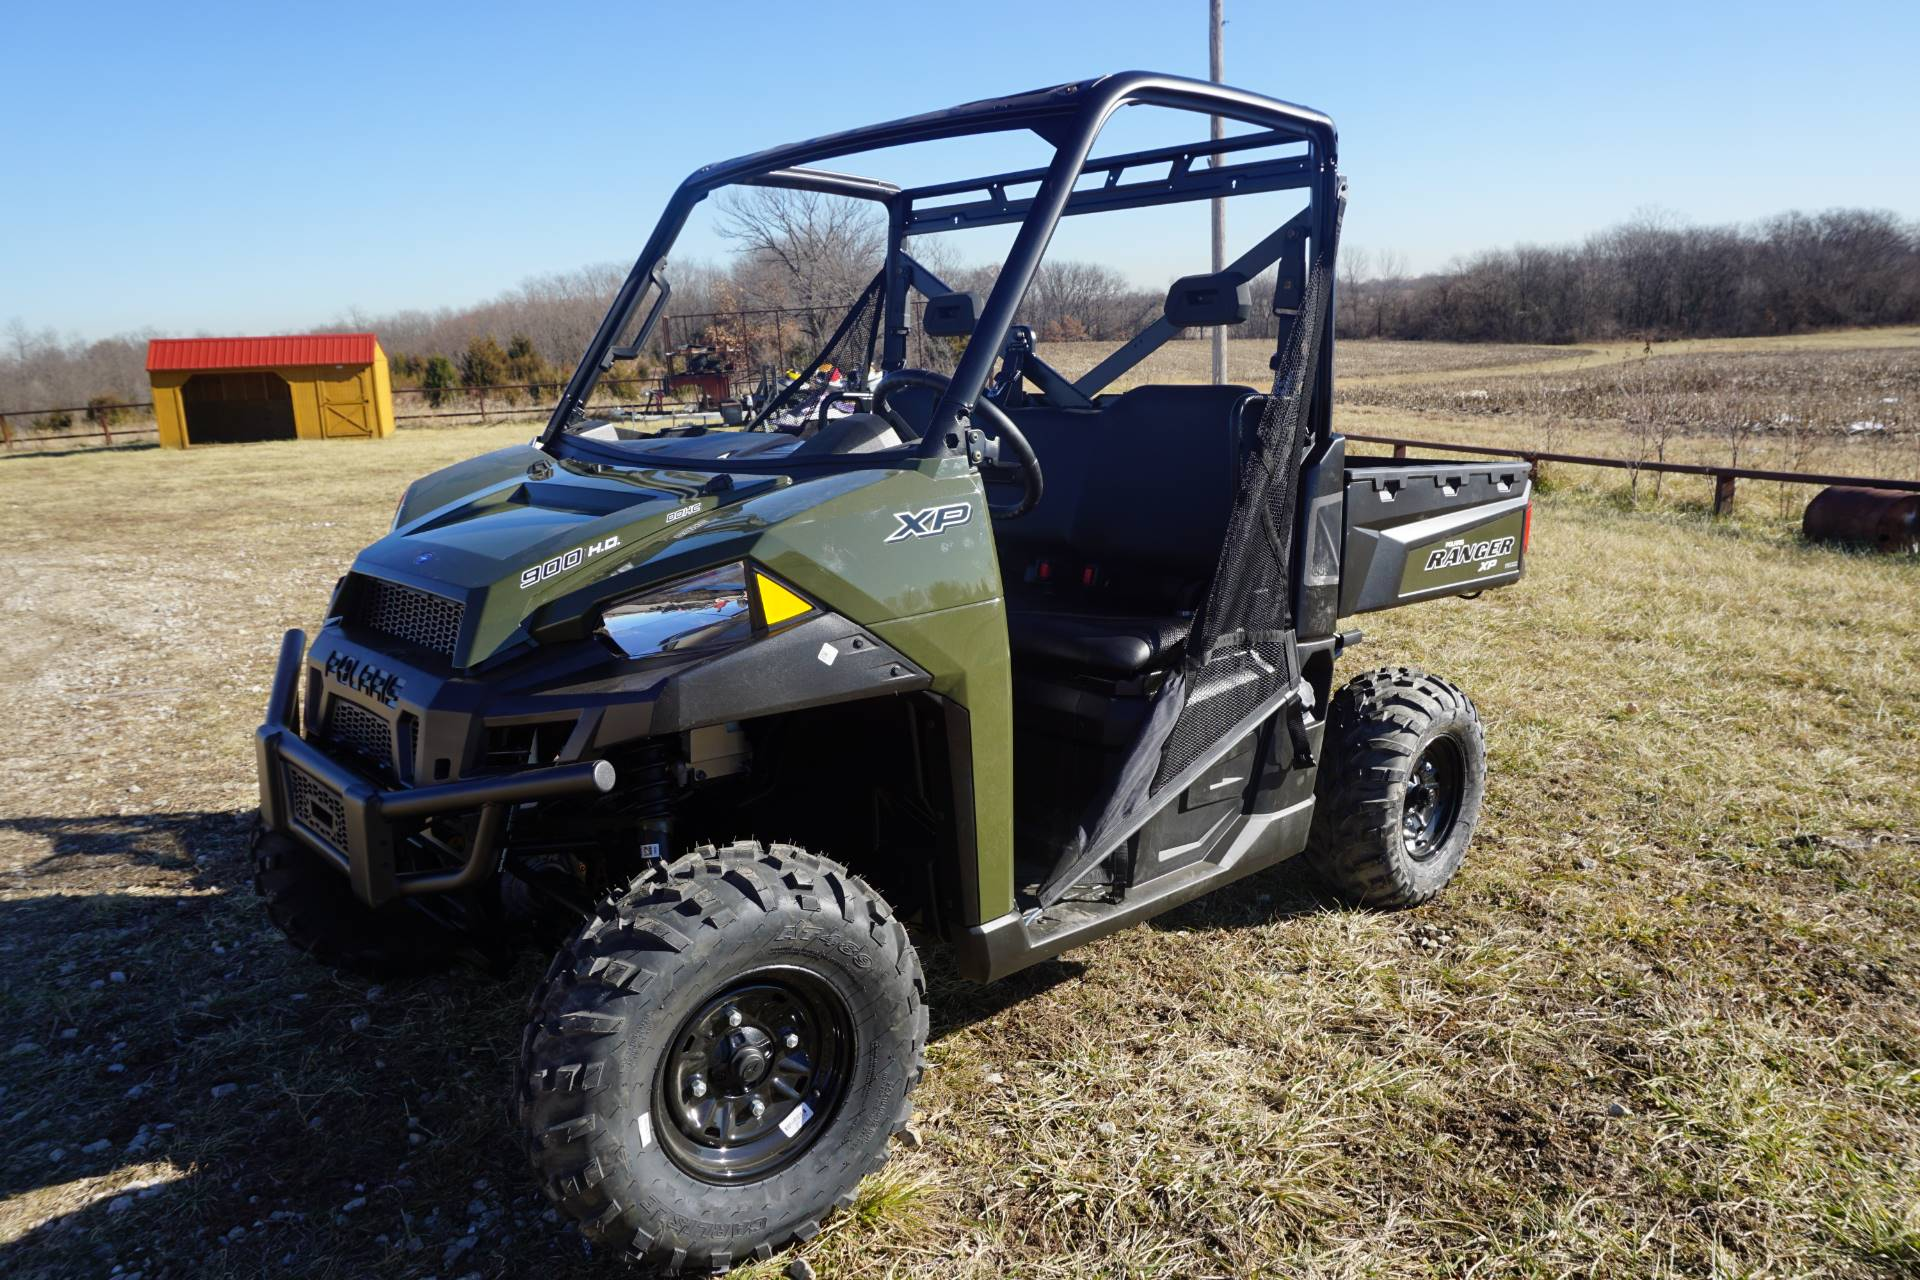 2019 Polaris Ranger XP 900 for sale 6158